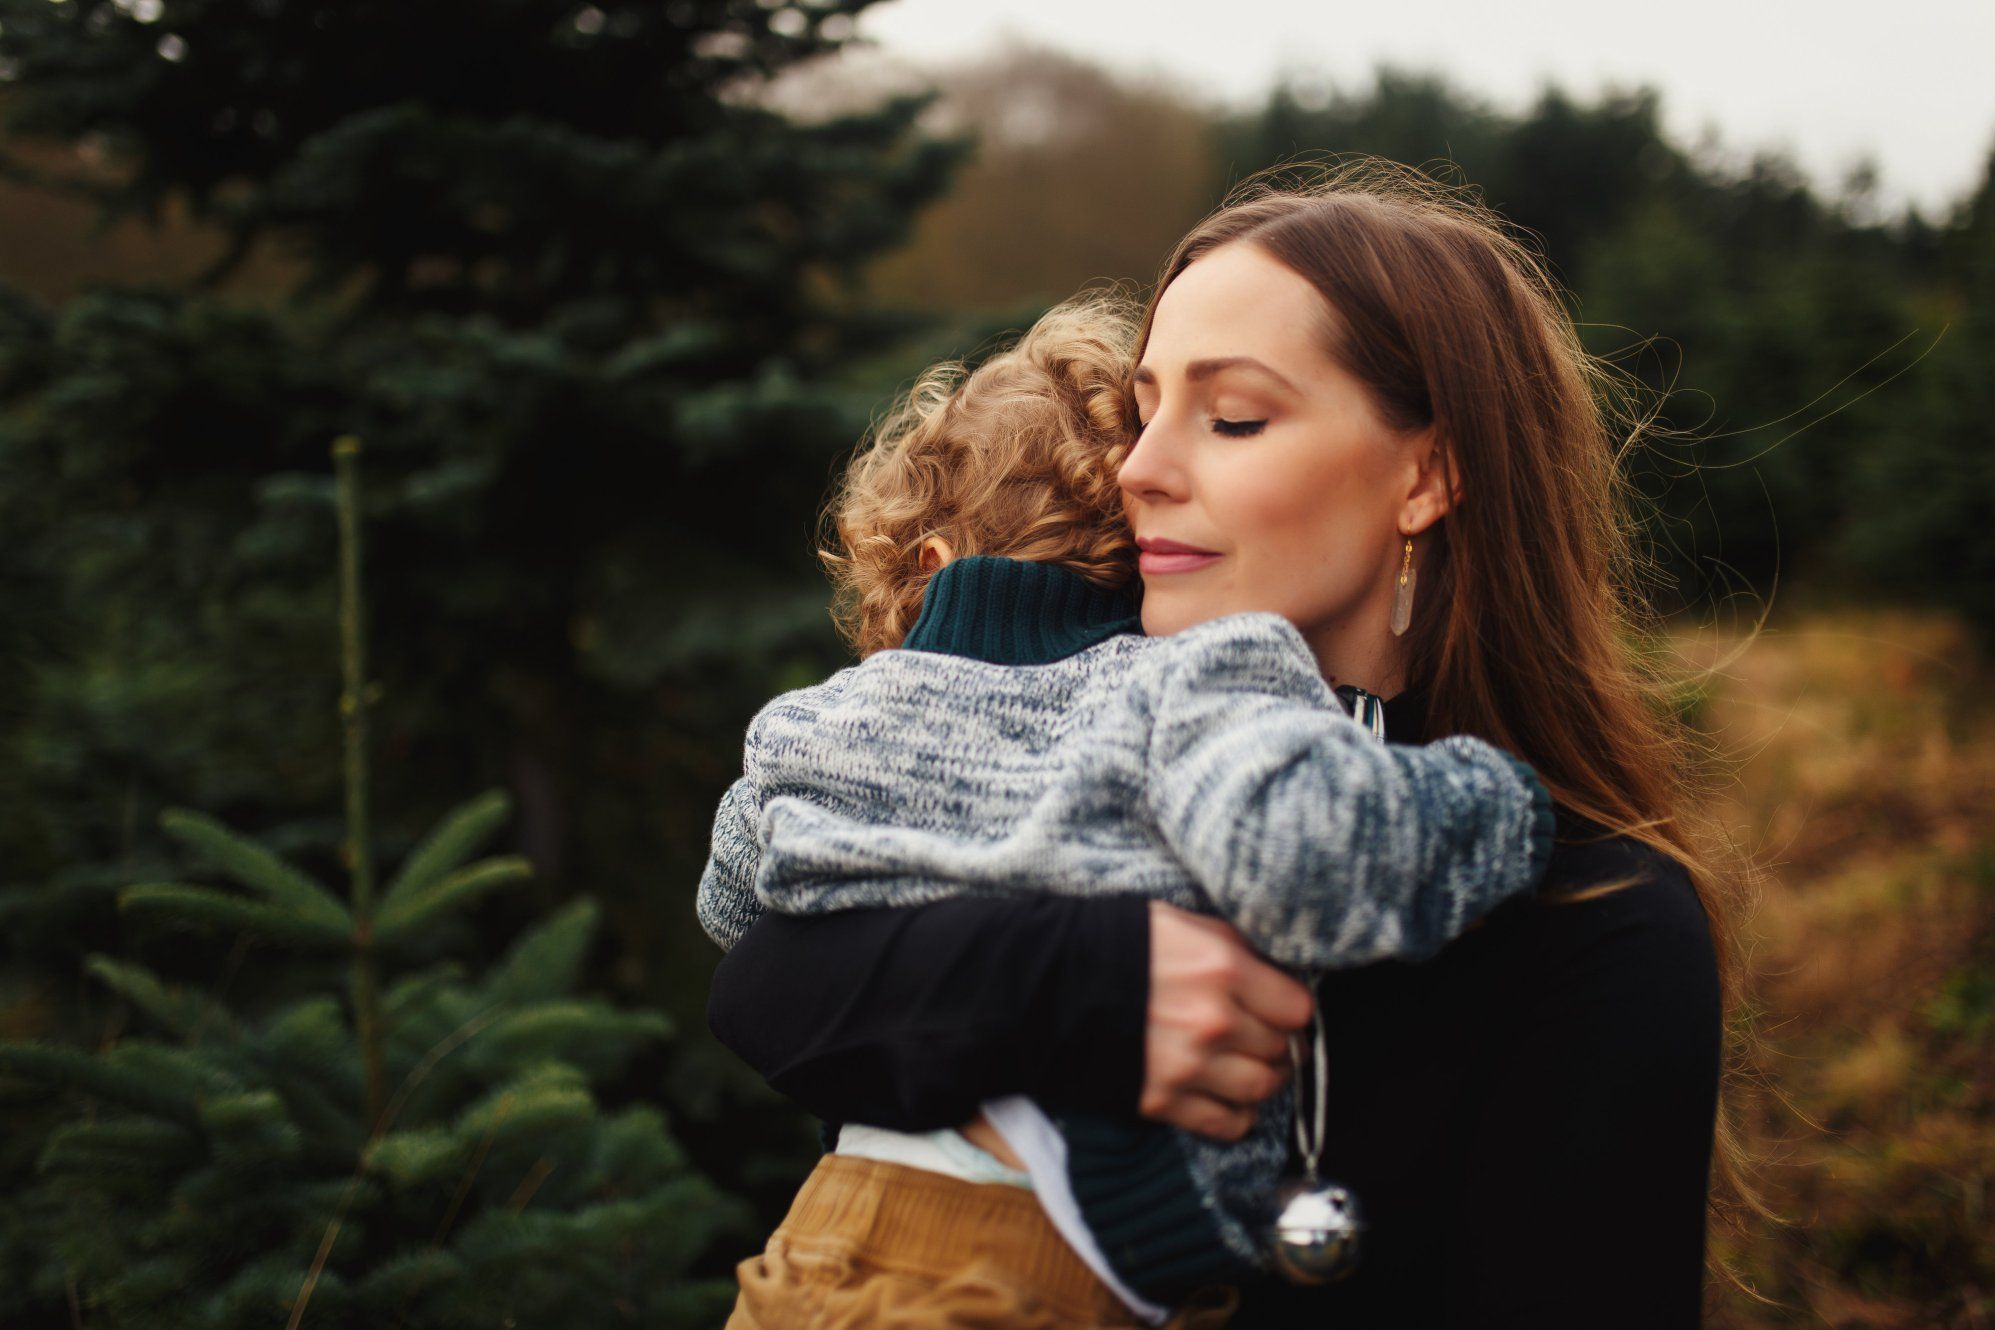 The most beautiful family Christmas photos s taken at a